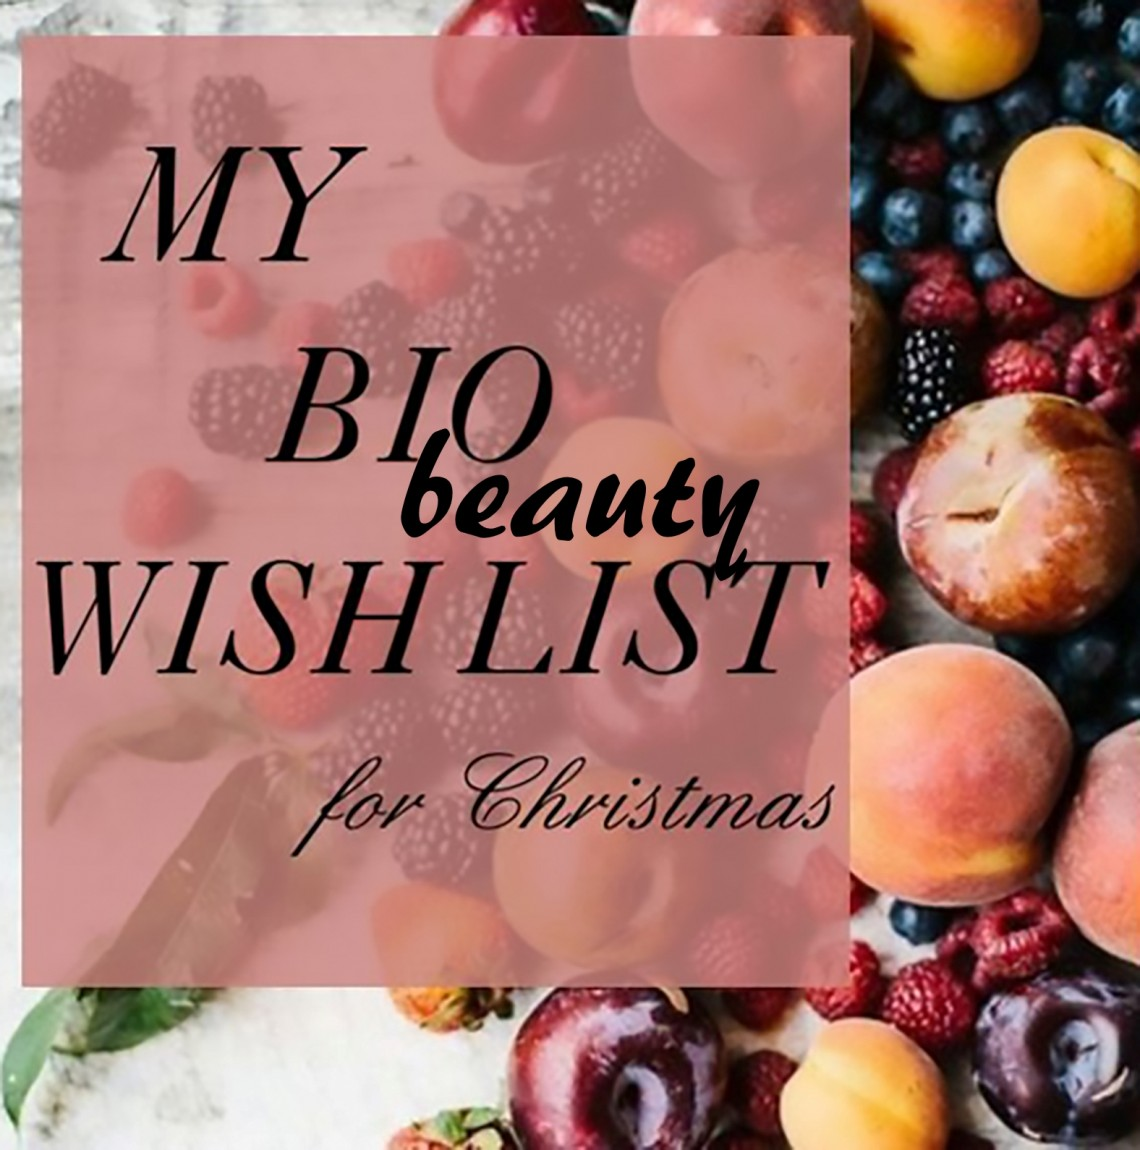 My Bio beauty wish list for Christmas